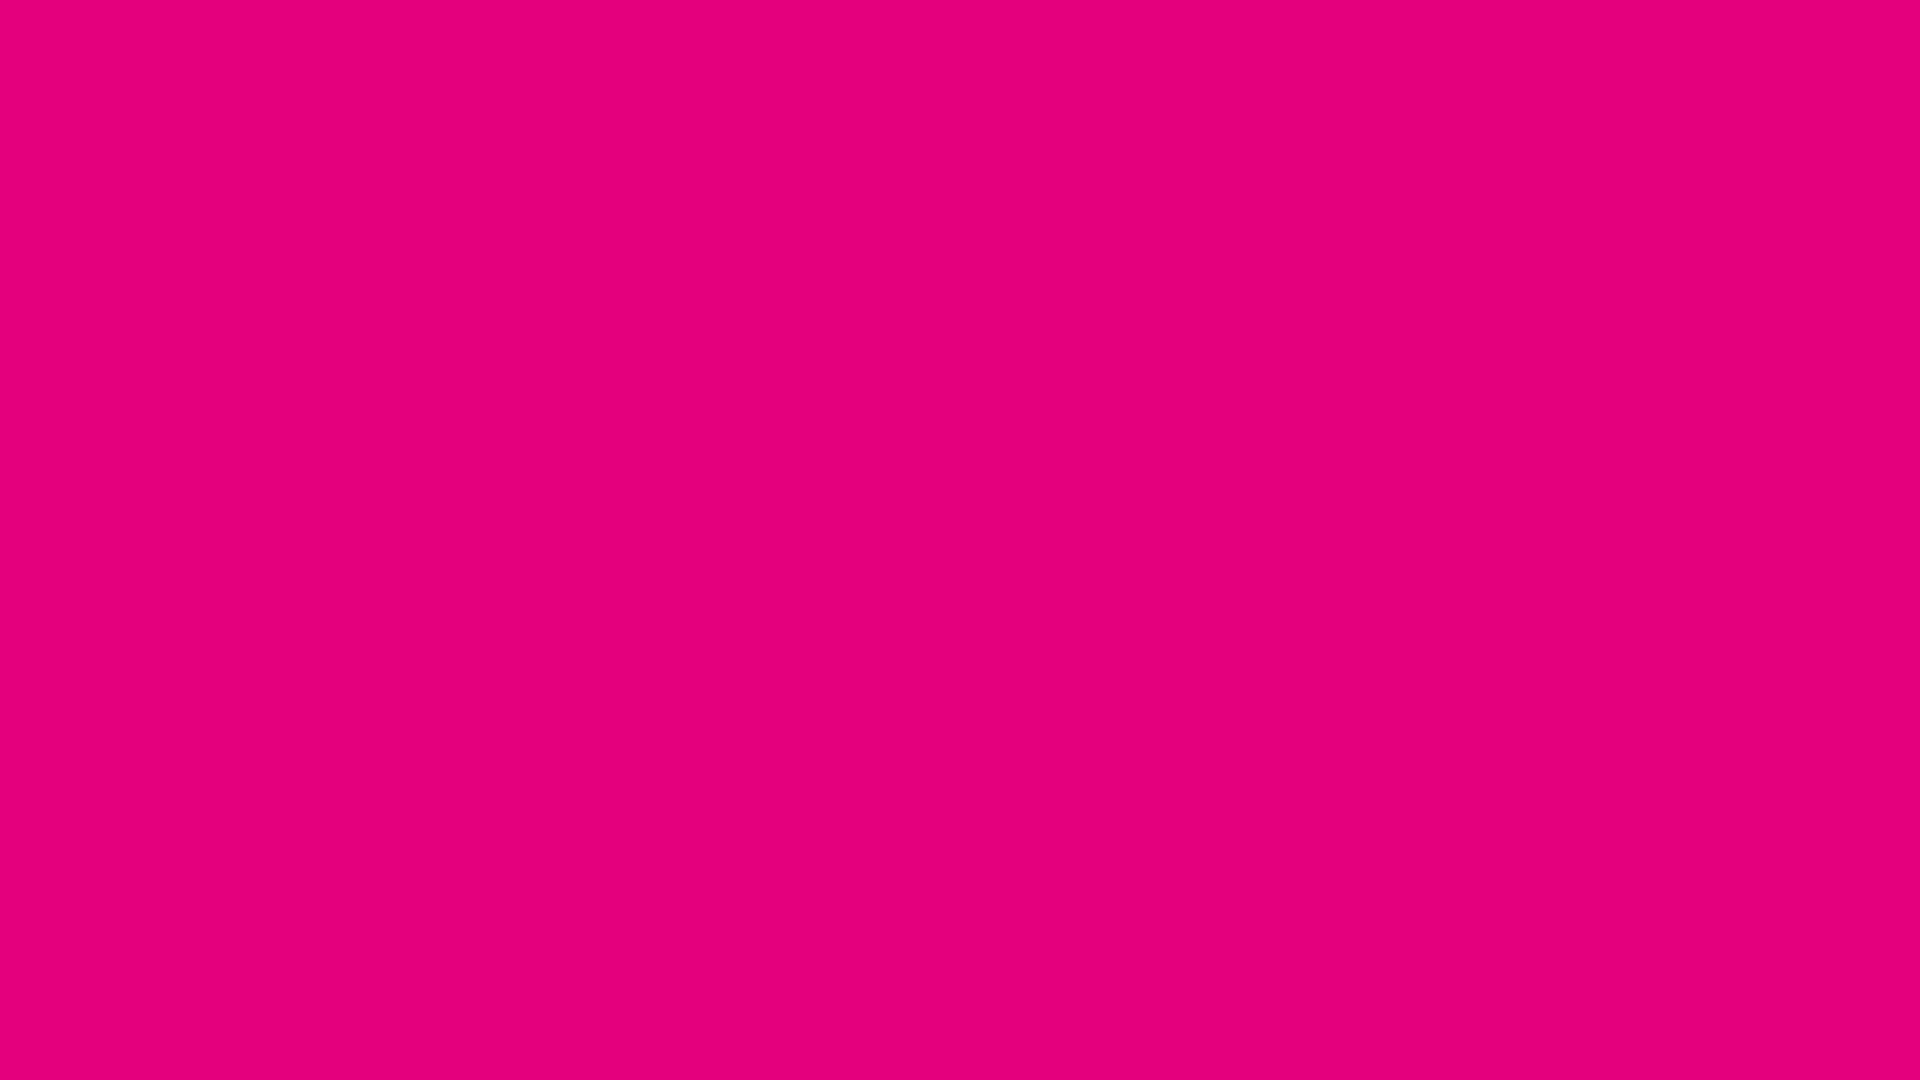 mexican pink - wallpaper, high definition, high quality, widescreen